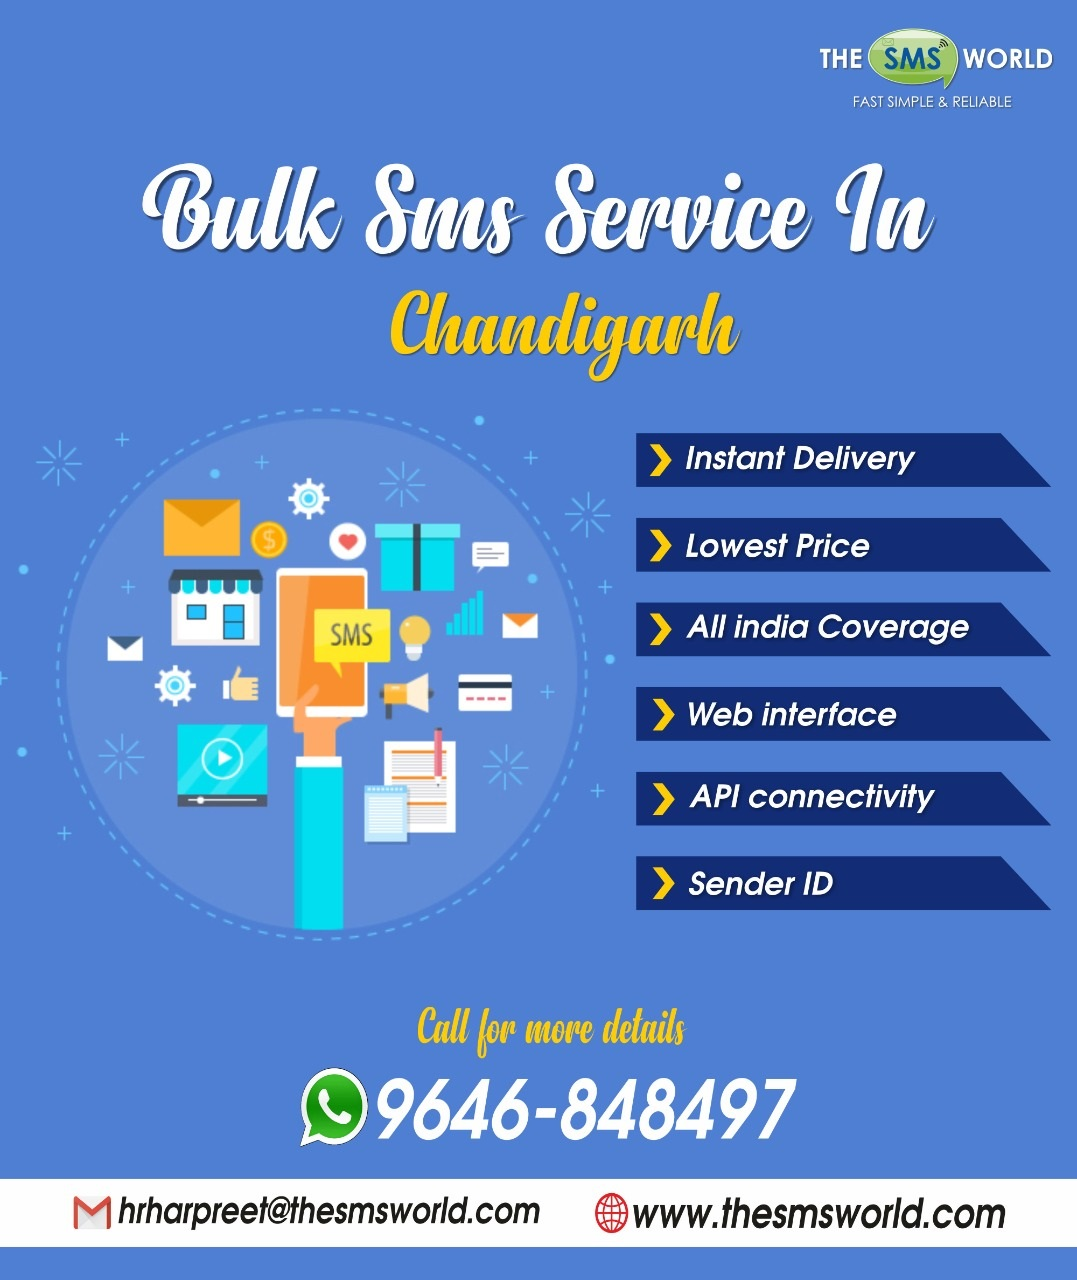 Bulk SMS Service in Chandigarh